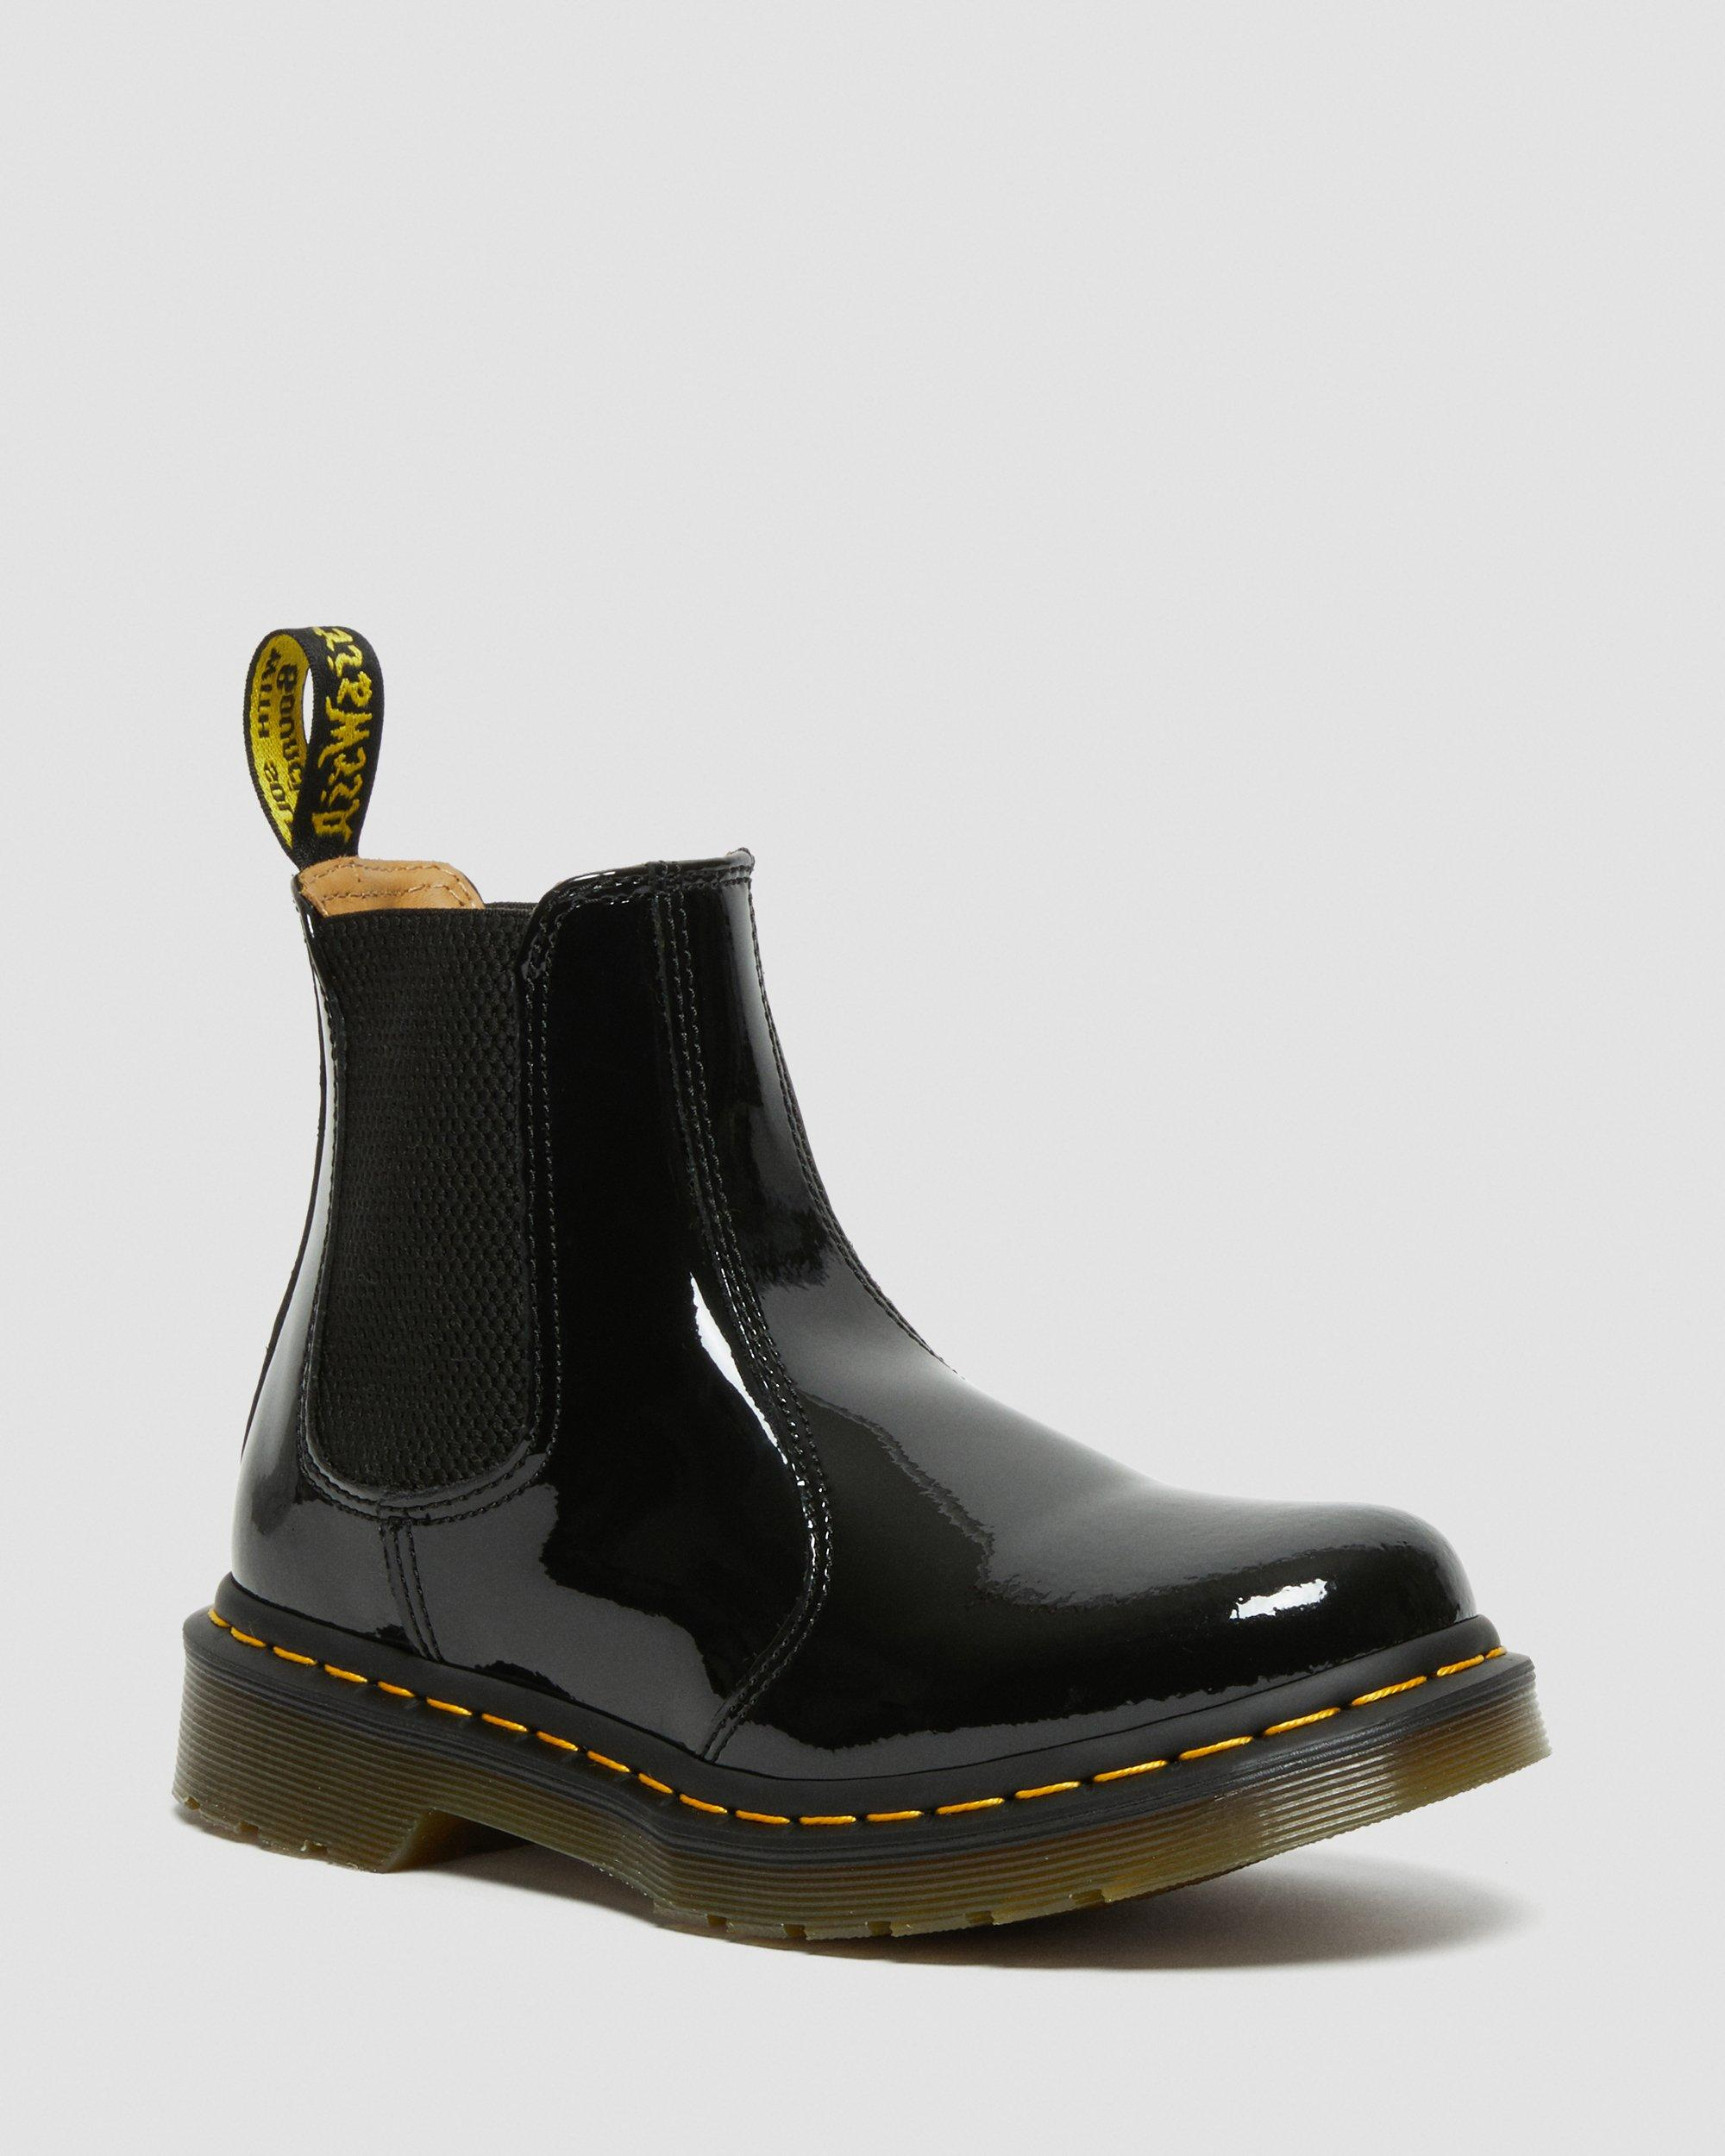 DR MARTENS 2976 WOMEN'S PATENT LEATHER CHELSEA BOOTS